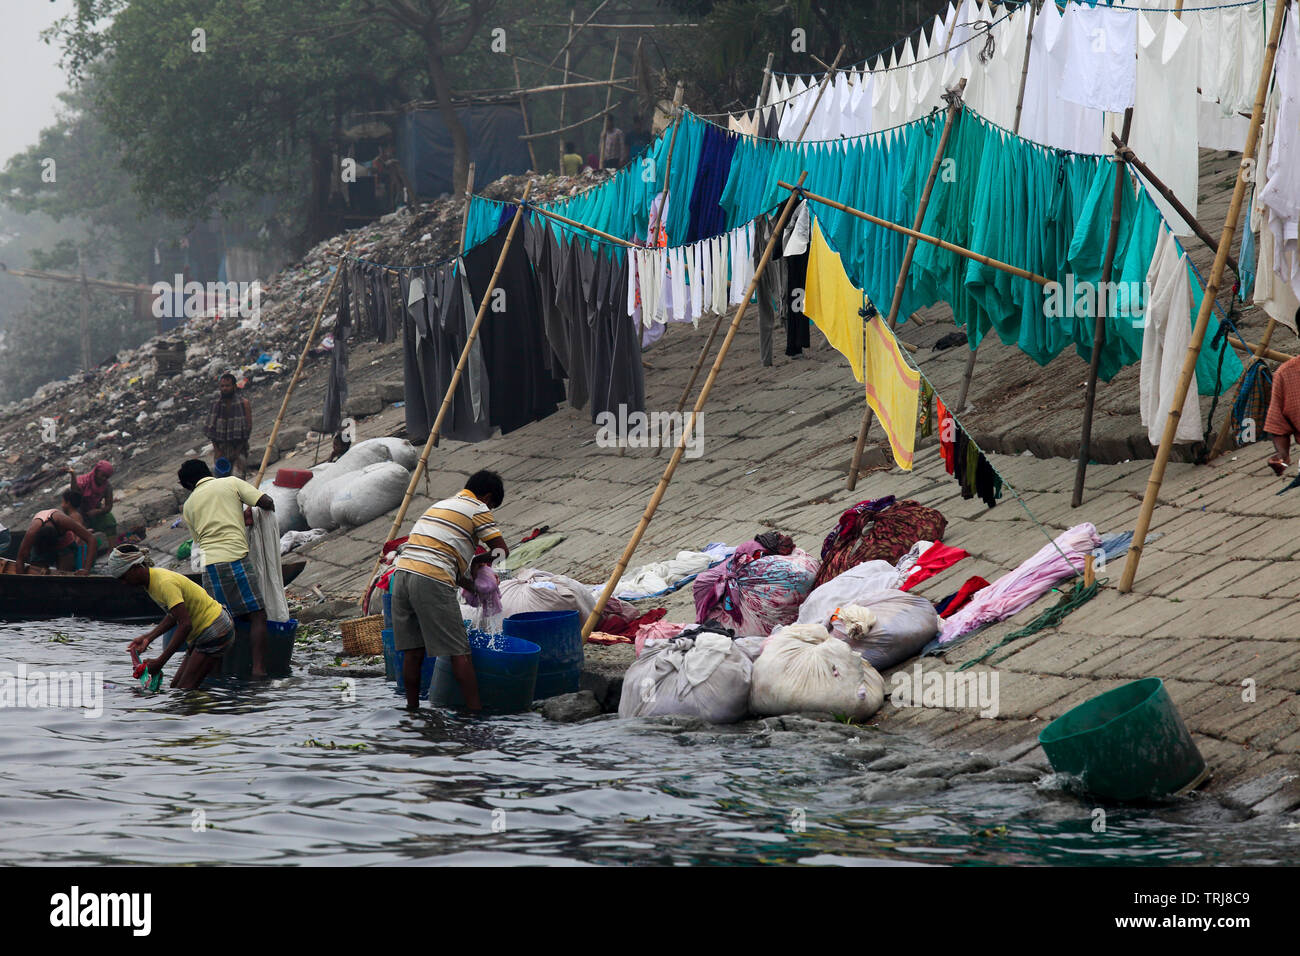 Aprons, bed-sheets, pillow covers used by doctors and patients at Dhaka's different hospitals are regularly washed in the polluted Burhiganga River, t - Stock Image